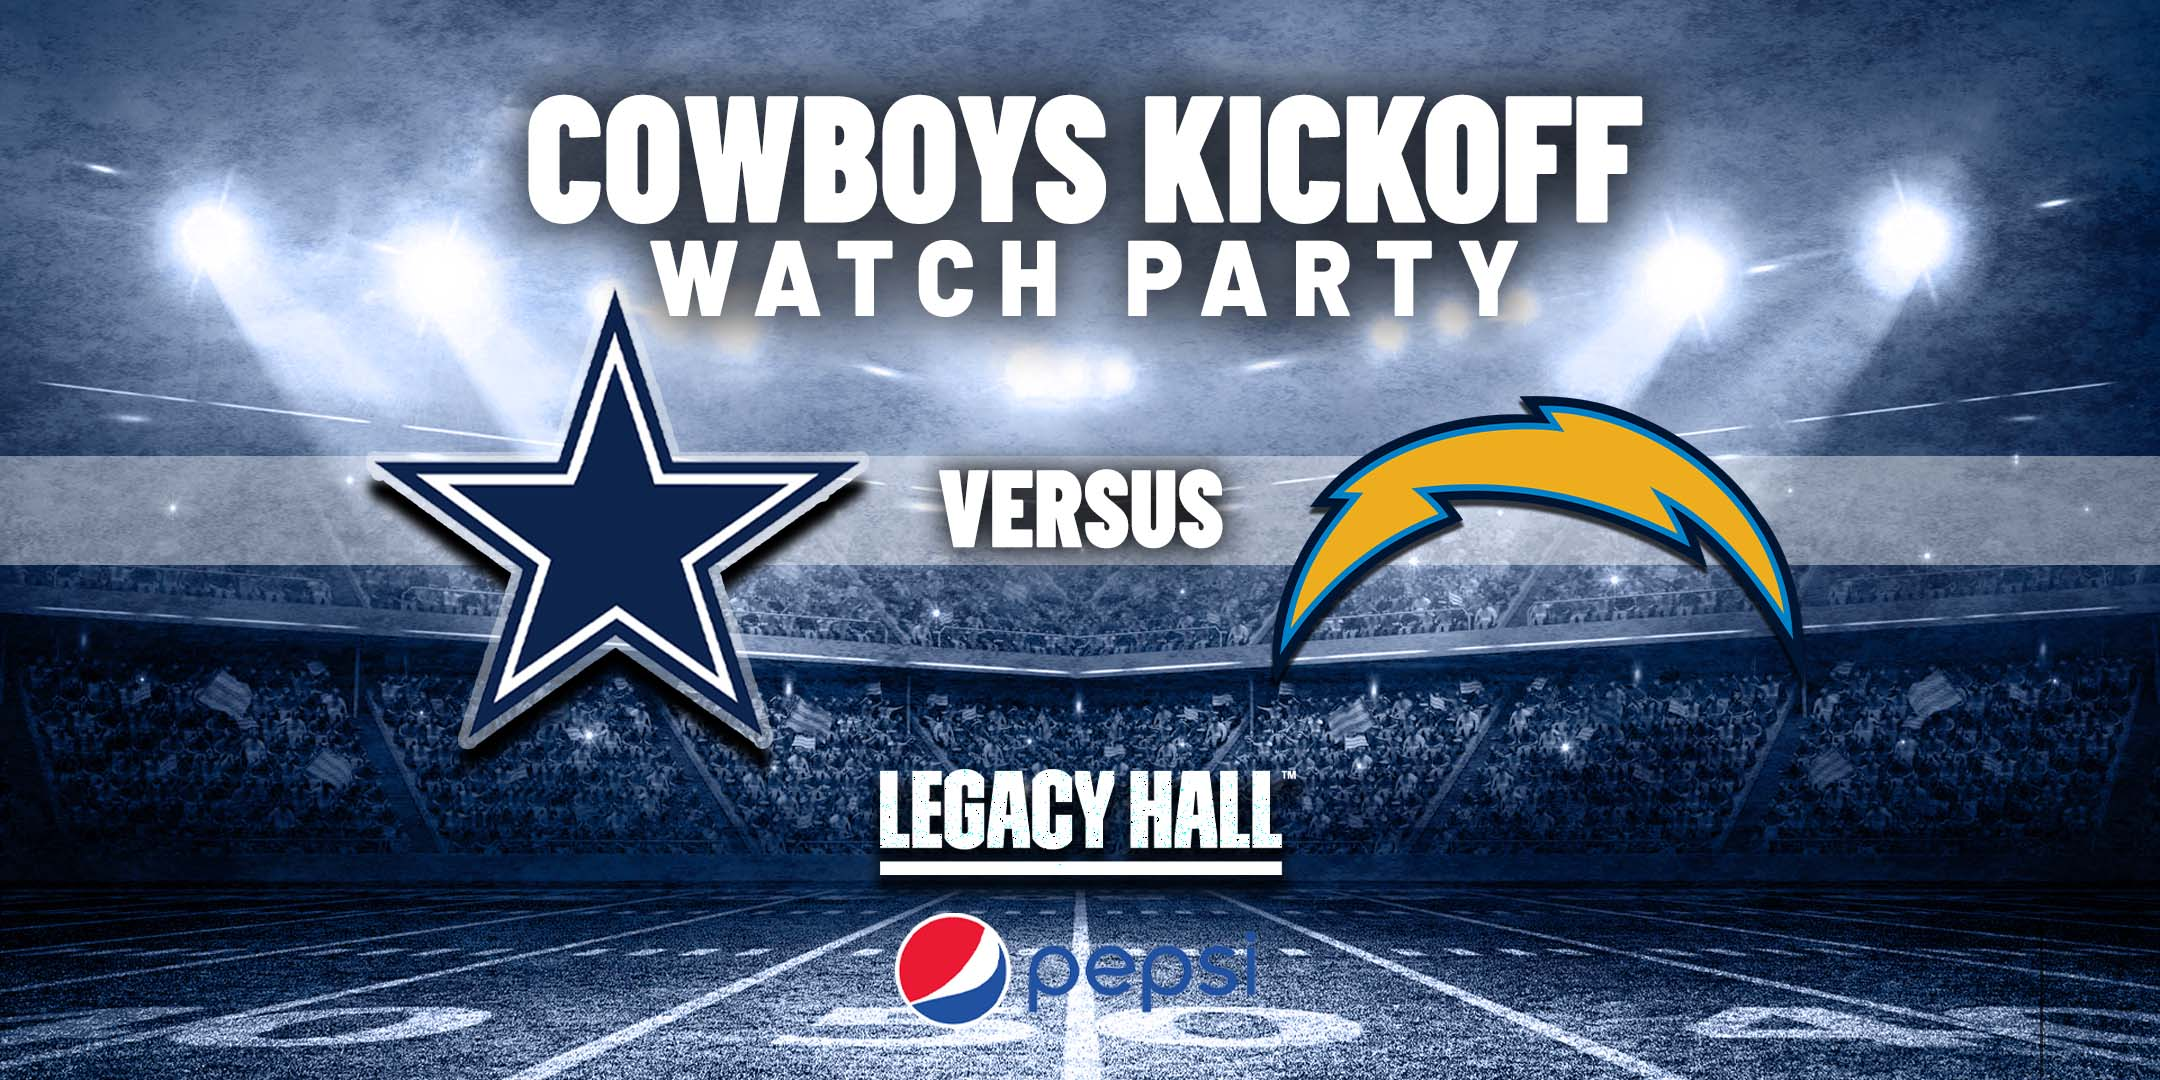 Promo image of Cowboys vs. Chargers Watch Party